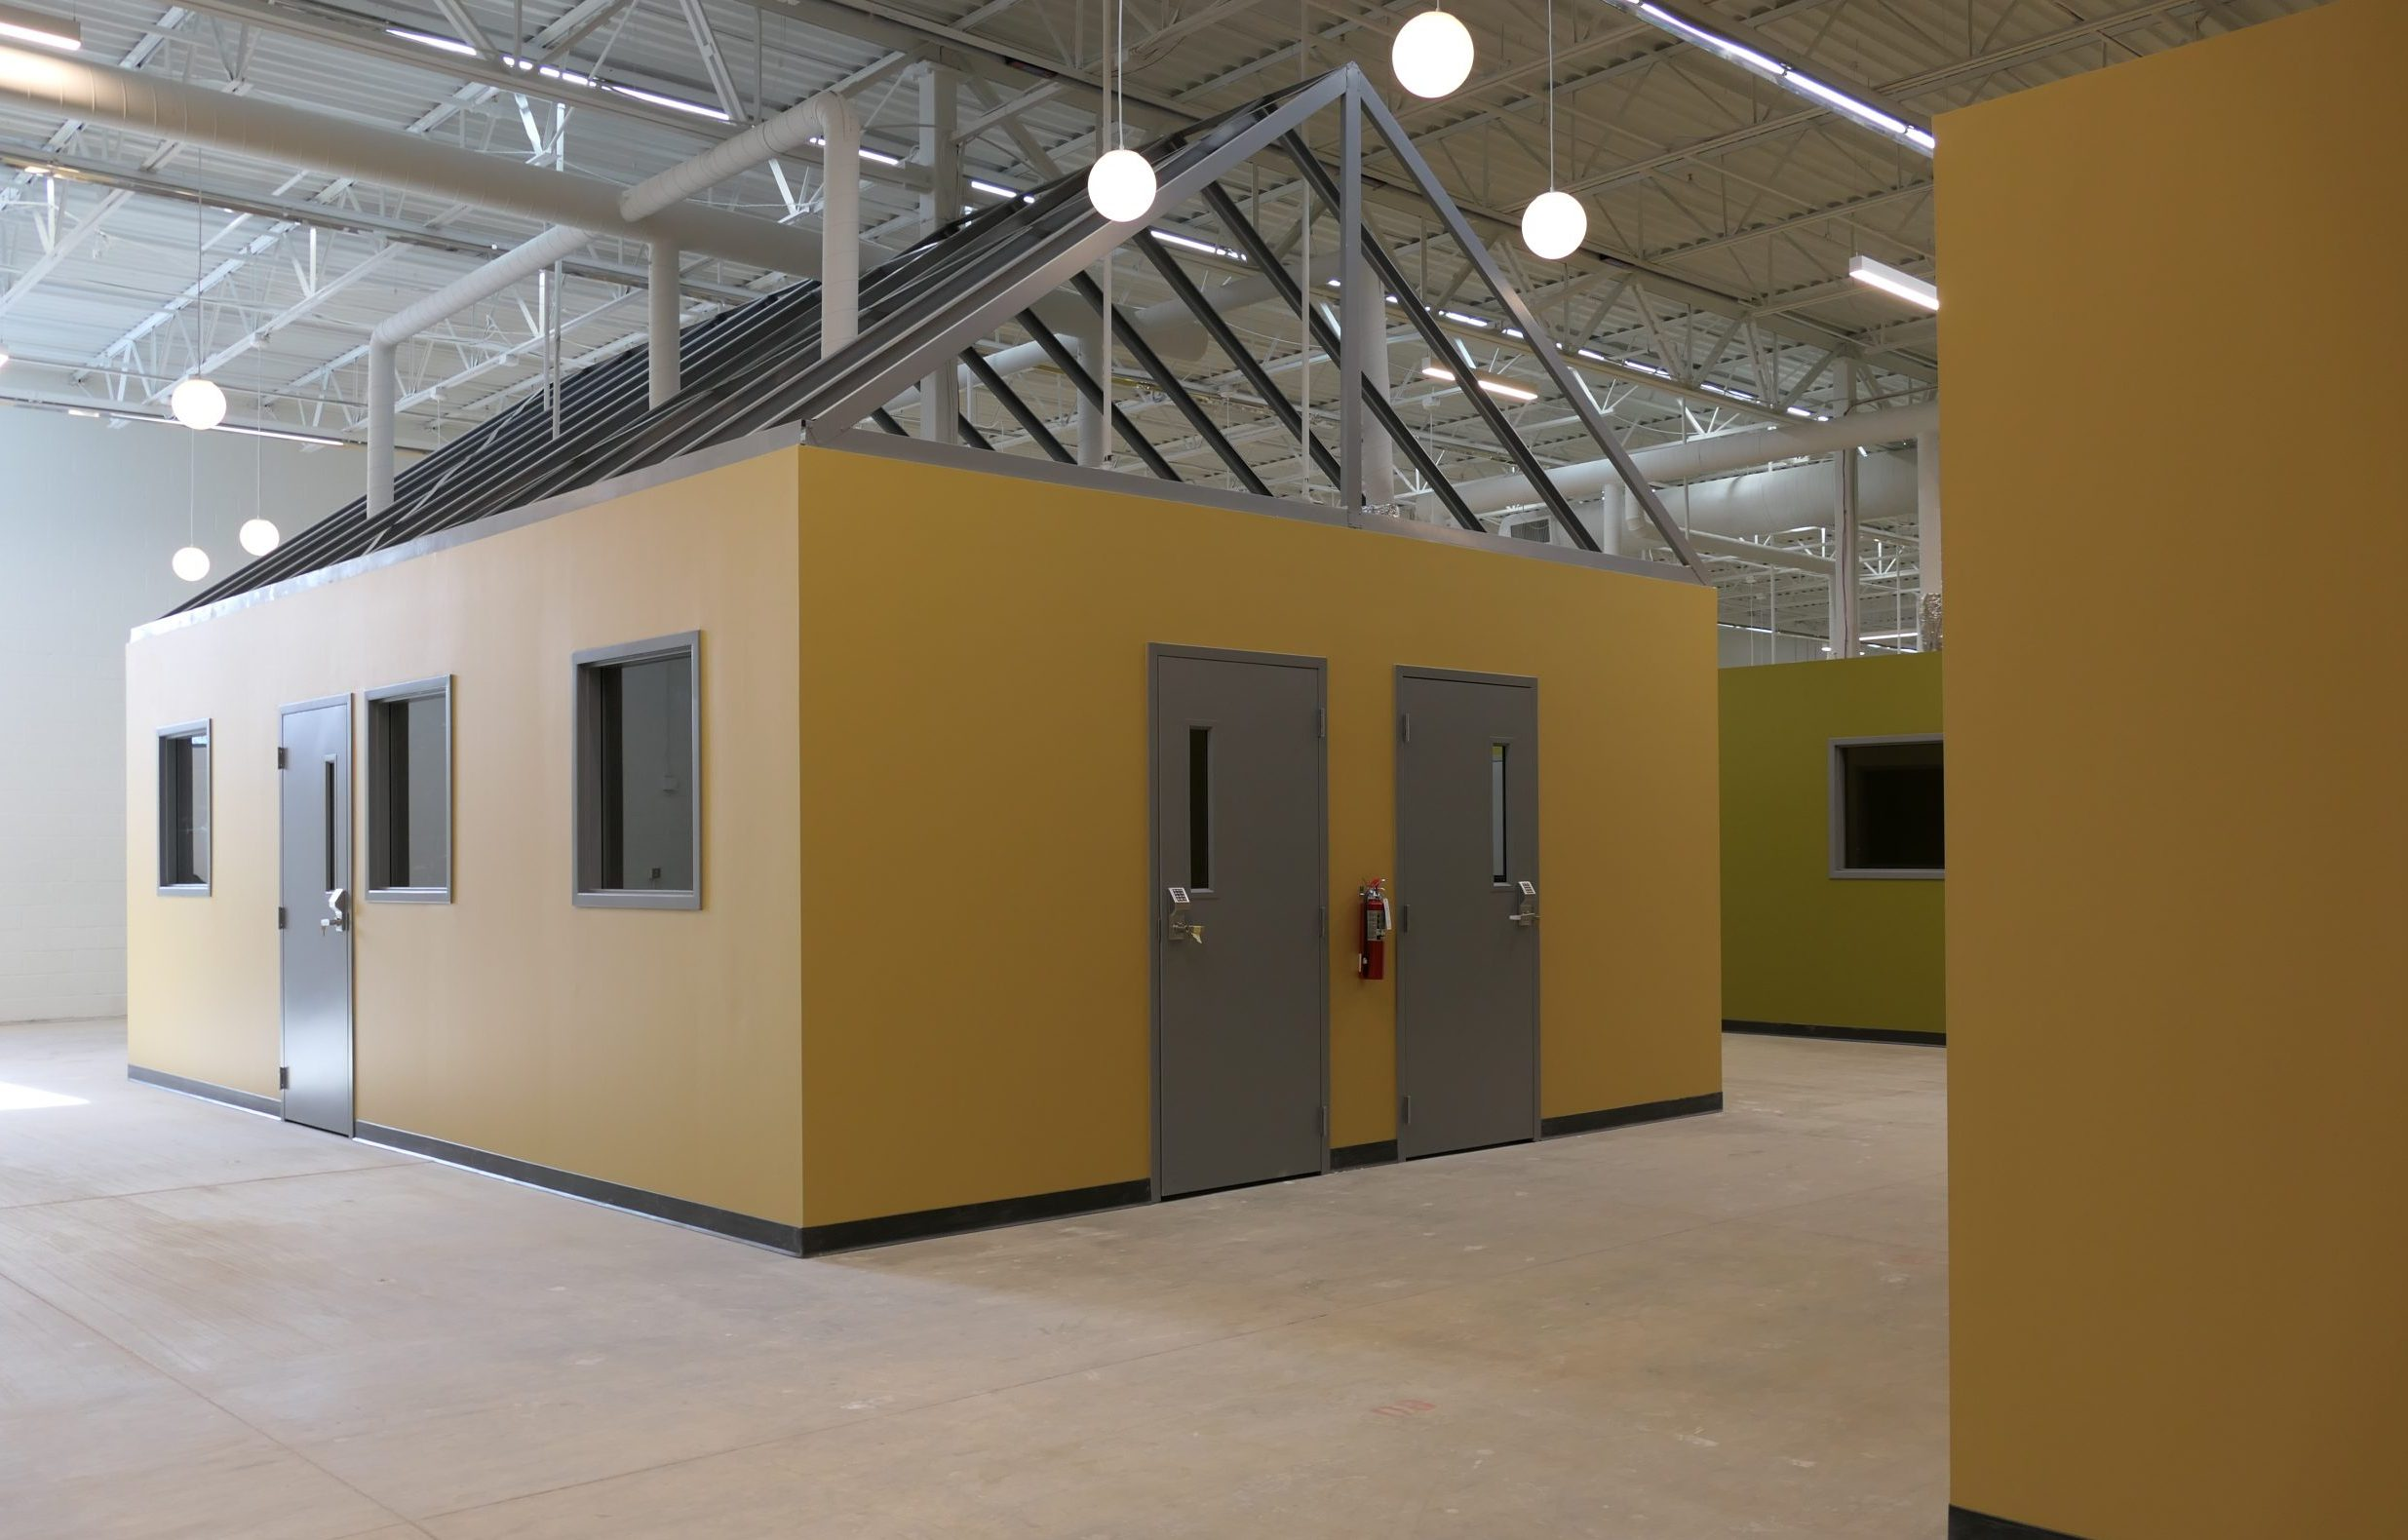 Indoor tiny house village for homeless people set to open next month in Minneapolis